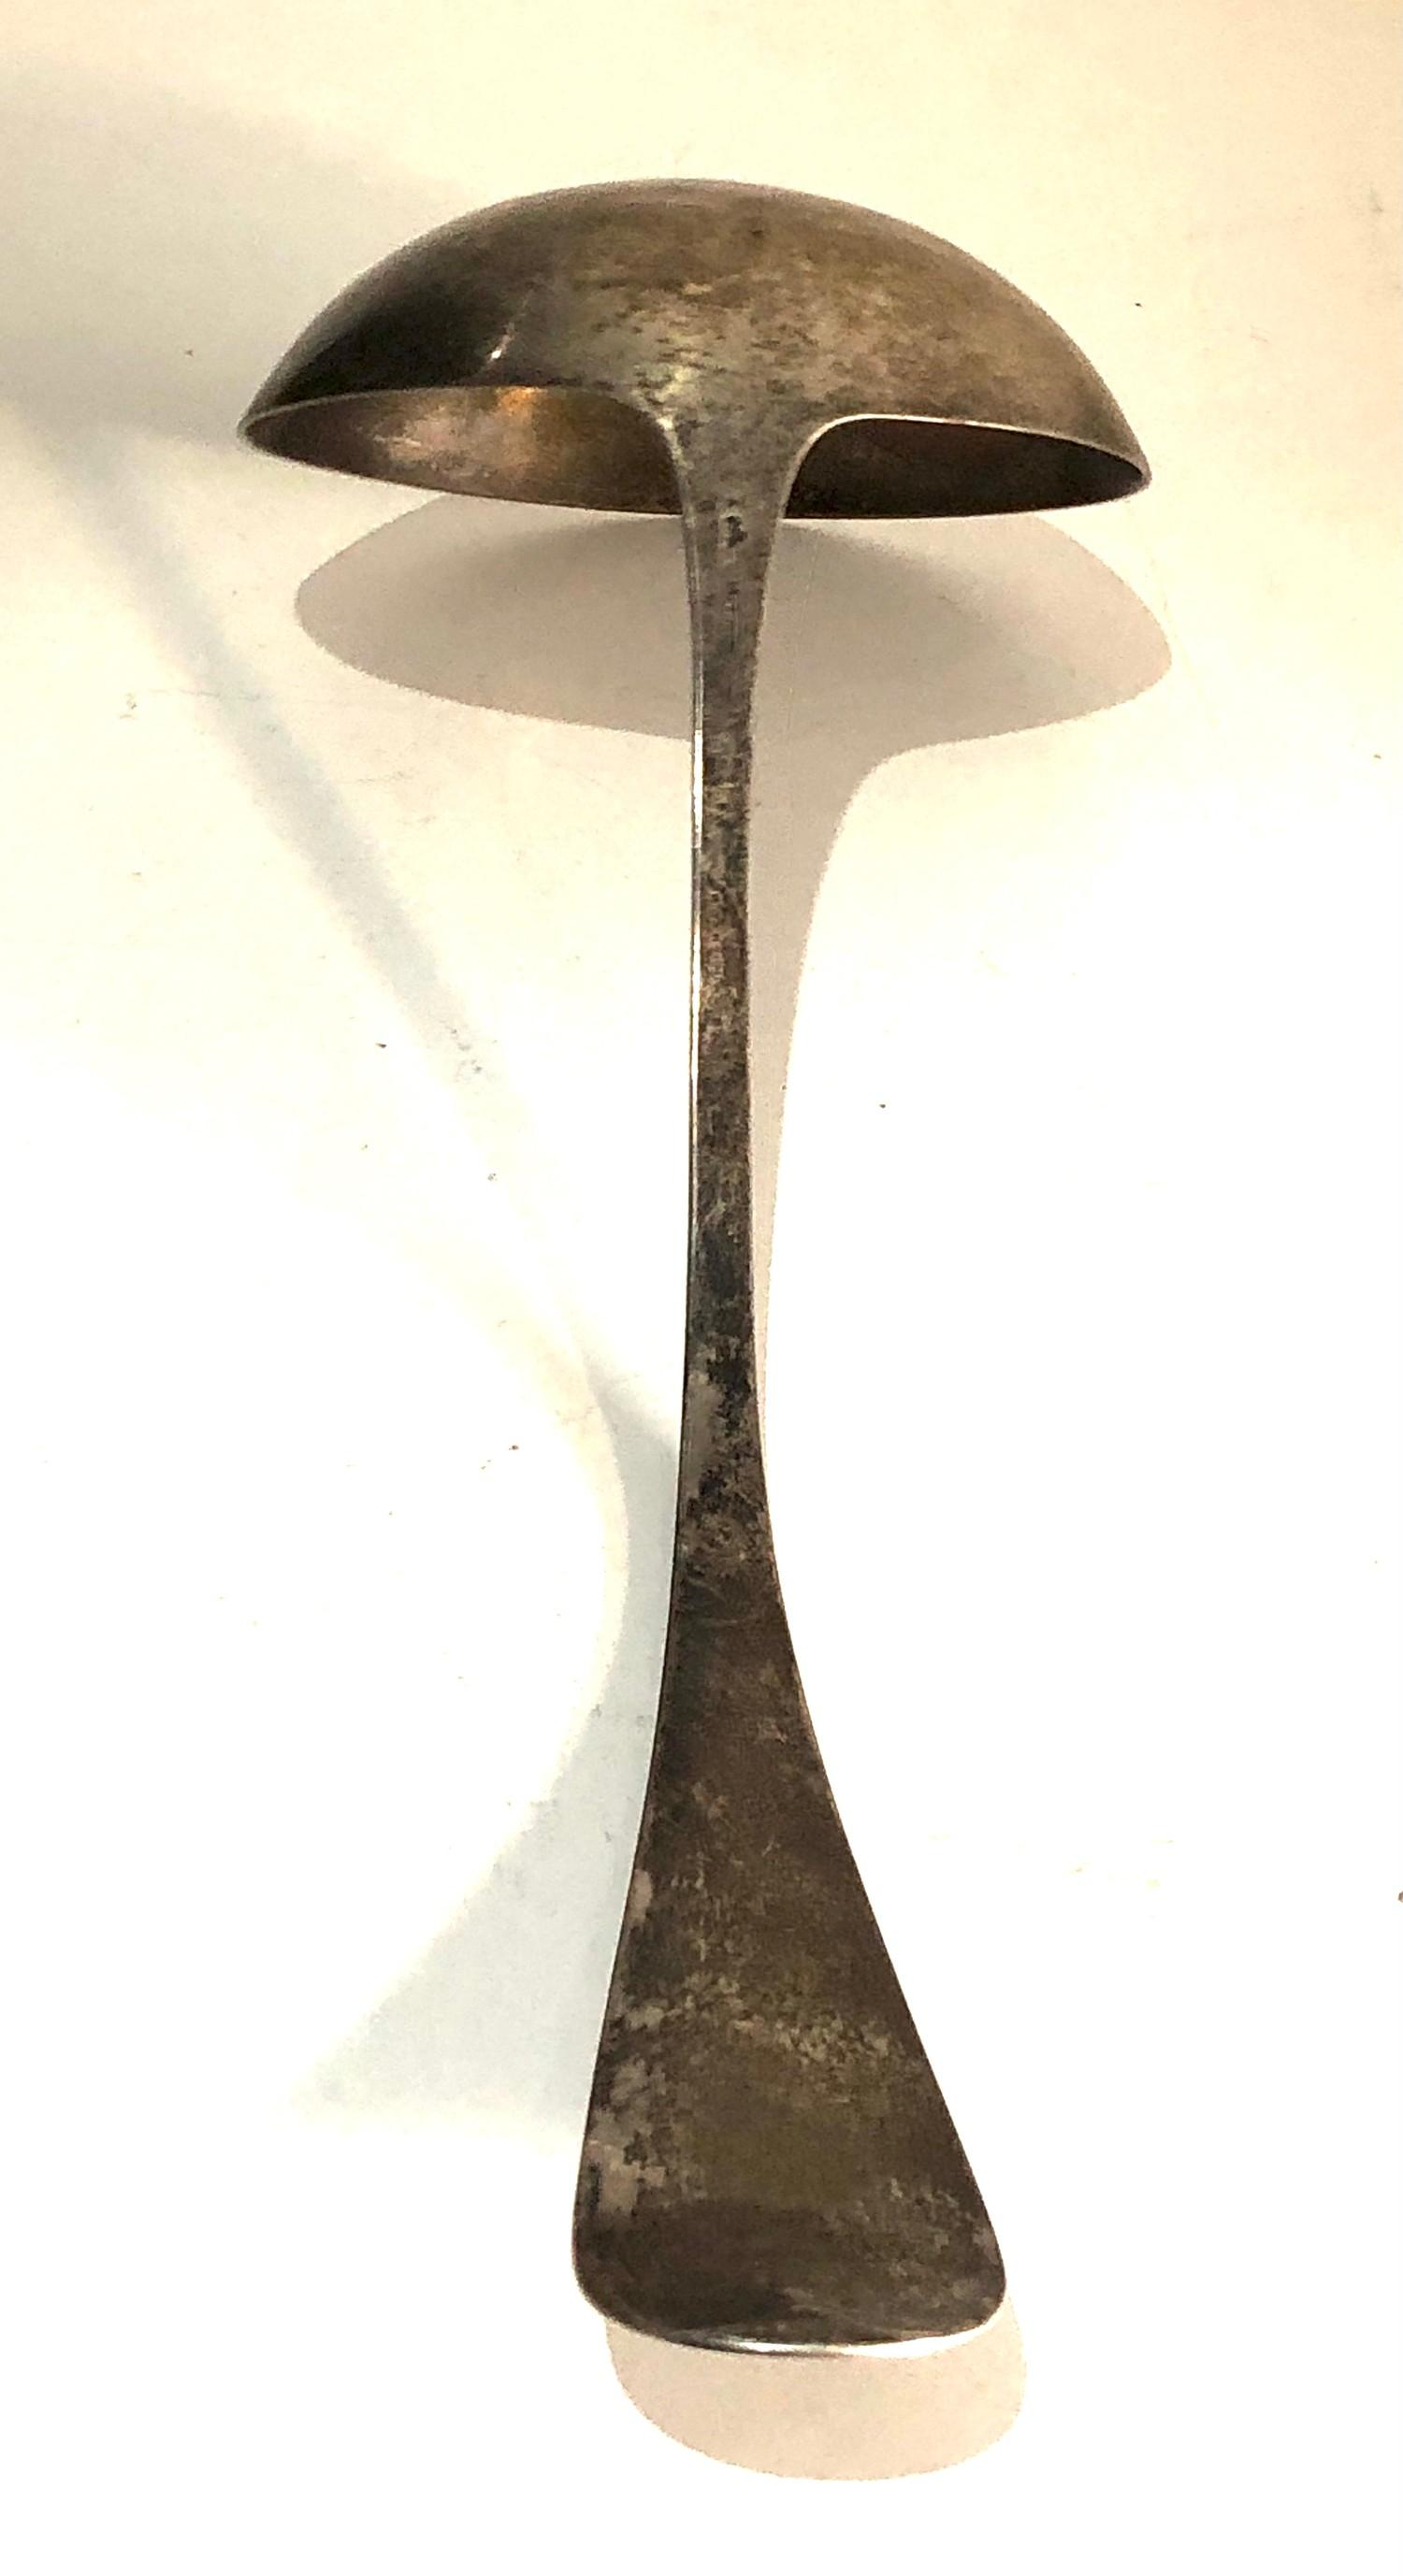 Sterling silver soup ladle weight 120g - Image 3 of 4